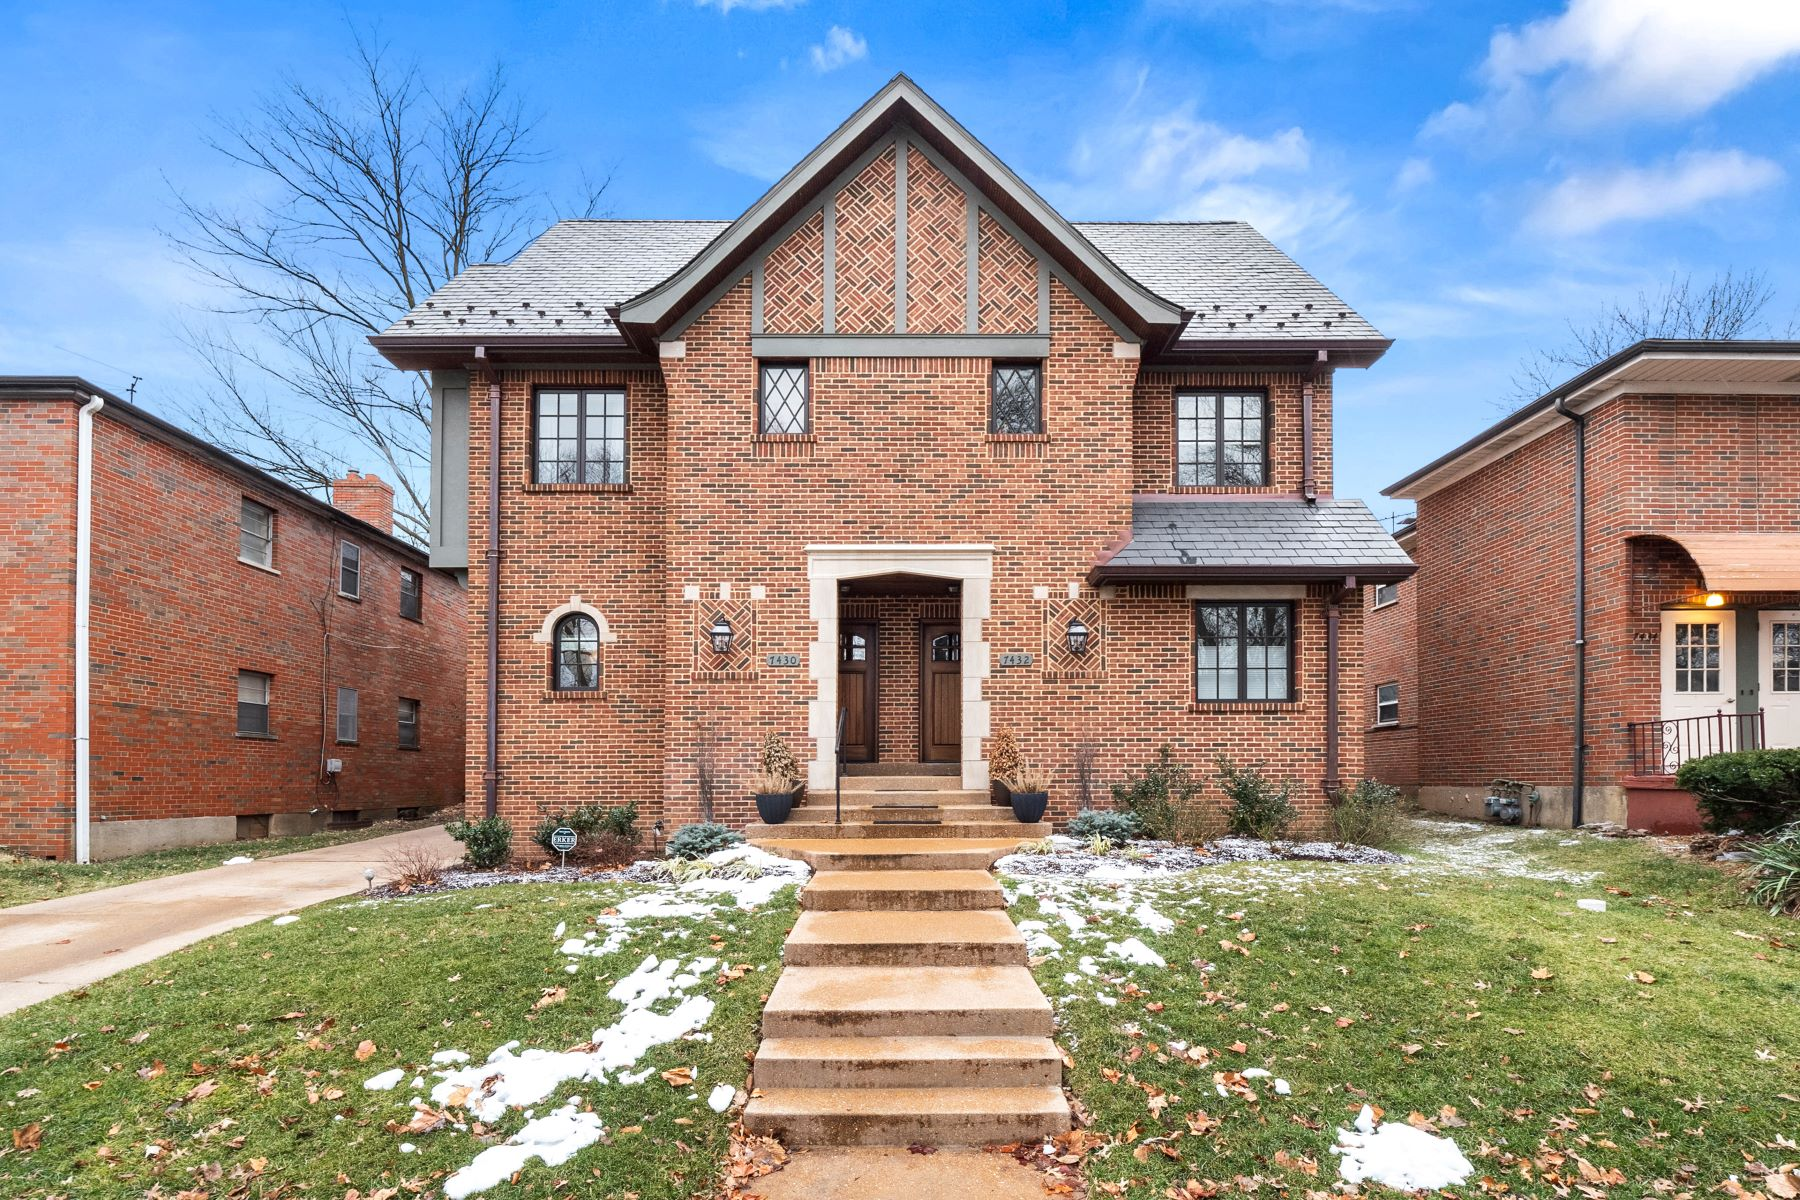 townhouses for Sale at Incredible Period Restoration Townhome 7430 Delmar Boulevard University City, Missouri 63130 United States